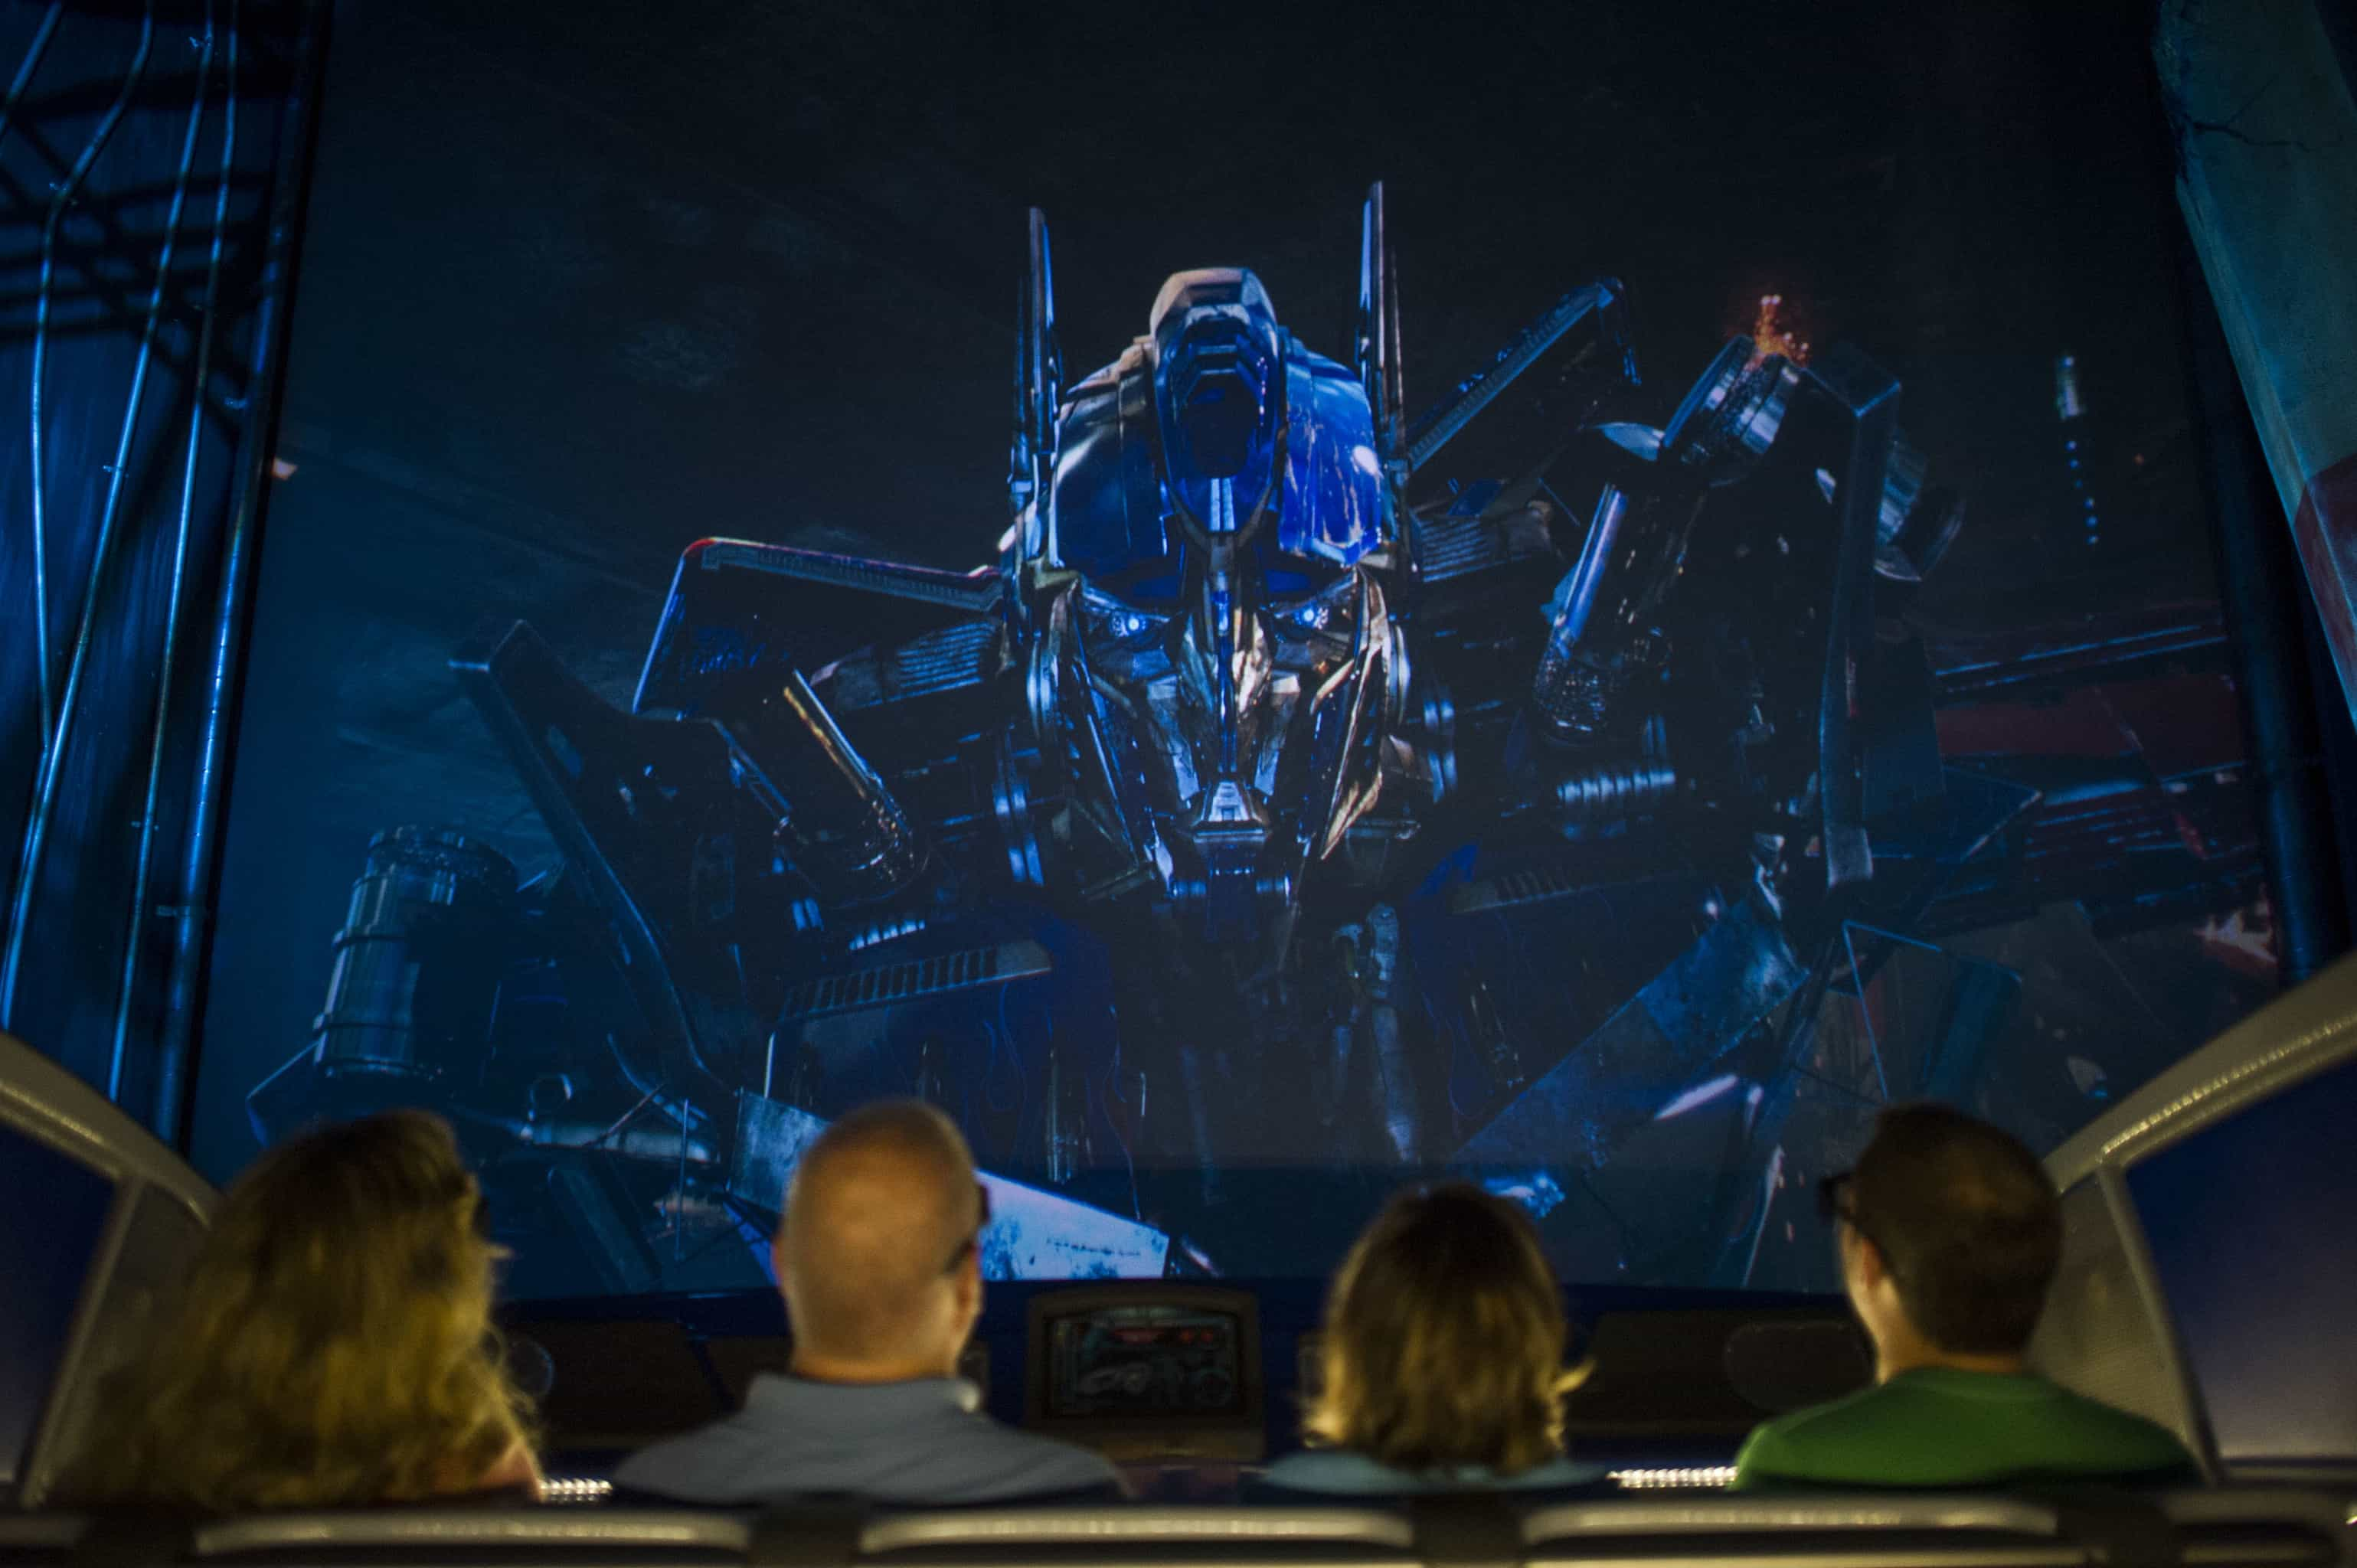 Transformers: The Ride – 3D at Universal Studios Florida